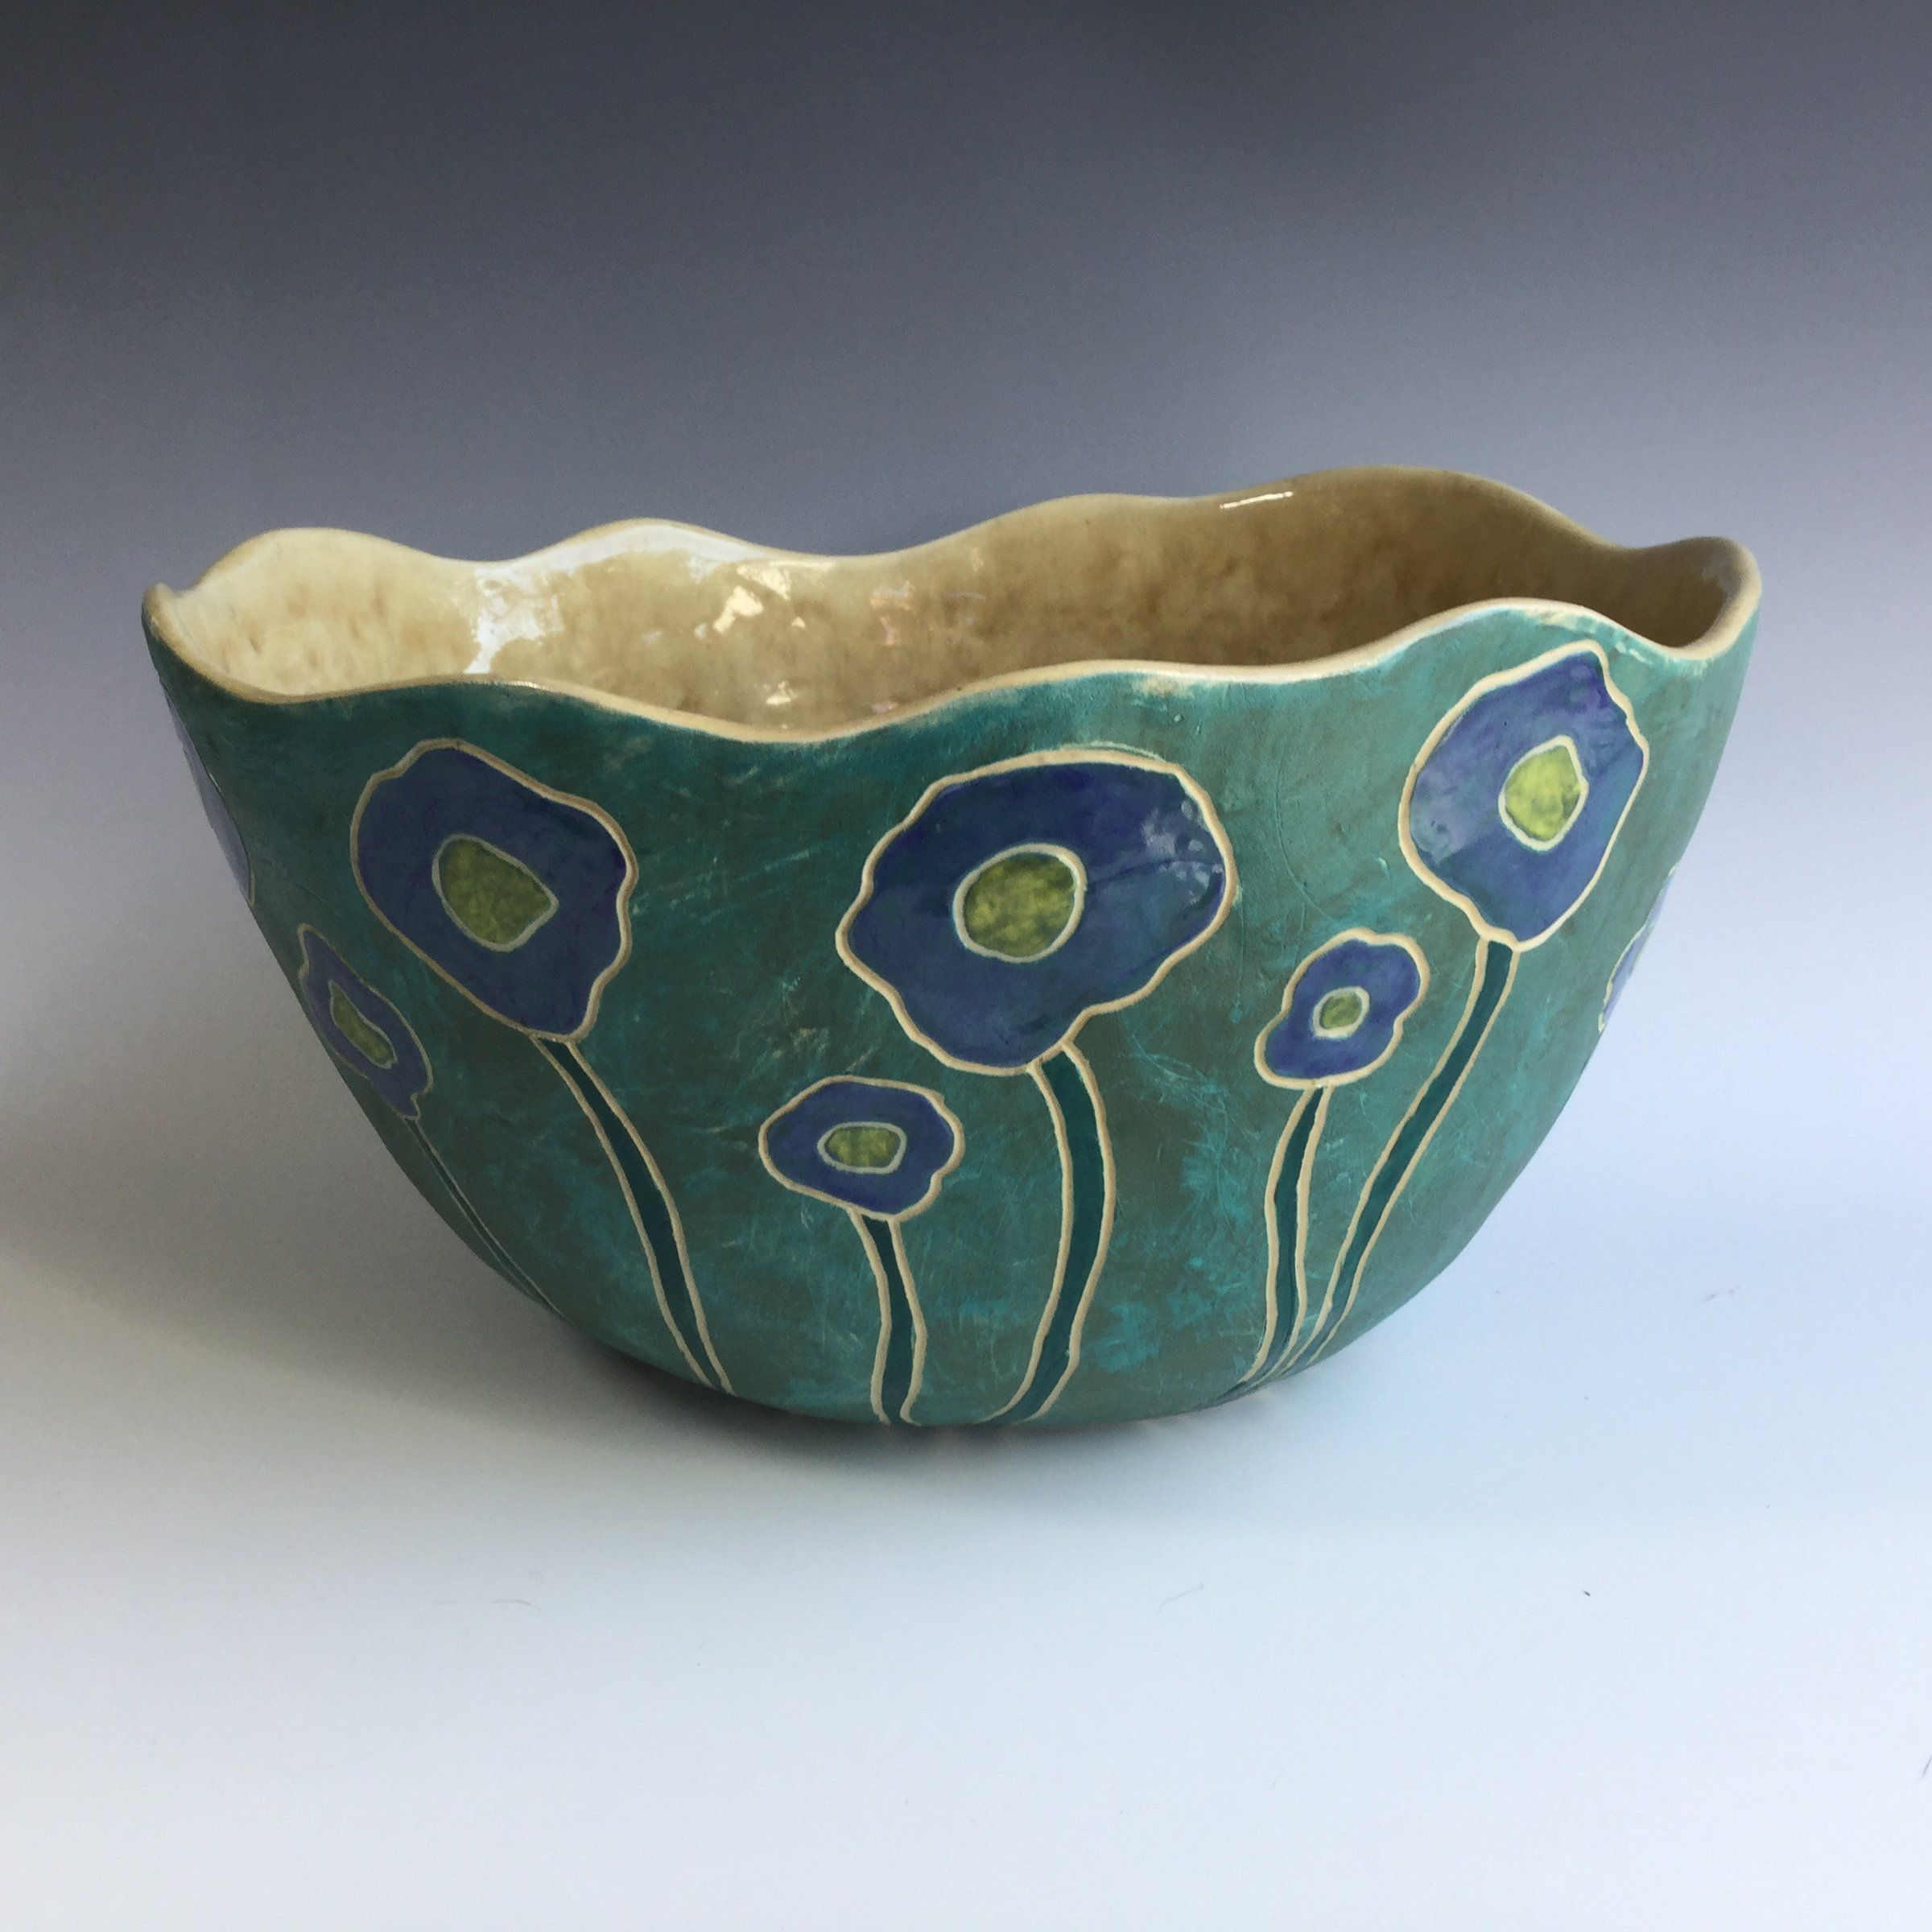 Ceramic Bowl - This Cornflower Bowl is a large hand-built stoneware bowl made by using pinching and coiling techniques. The outside was carefully carved, and colored underglazes were applied before the first firing. A glaze was applied before the second firing to add color contrast and functionality. The bowl can safely be washed by hand or in the dishwasher. It makes a wonderful statement piece or gift. Holds approx. 40 oz.